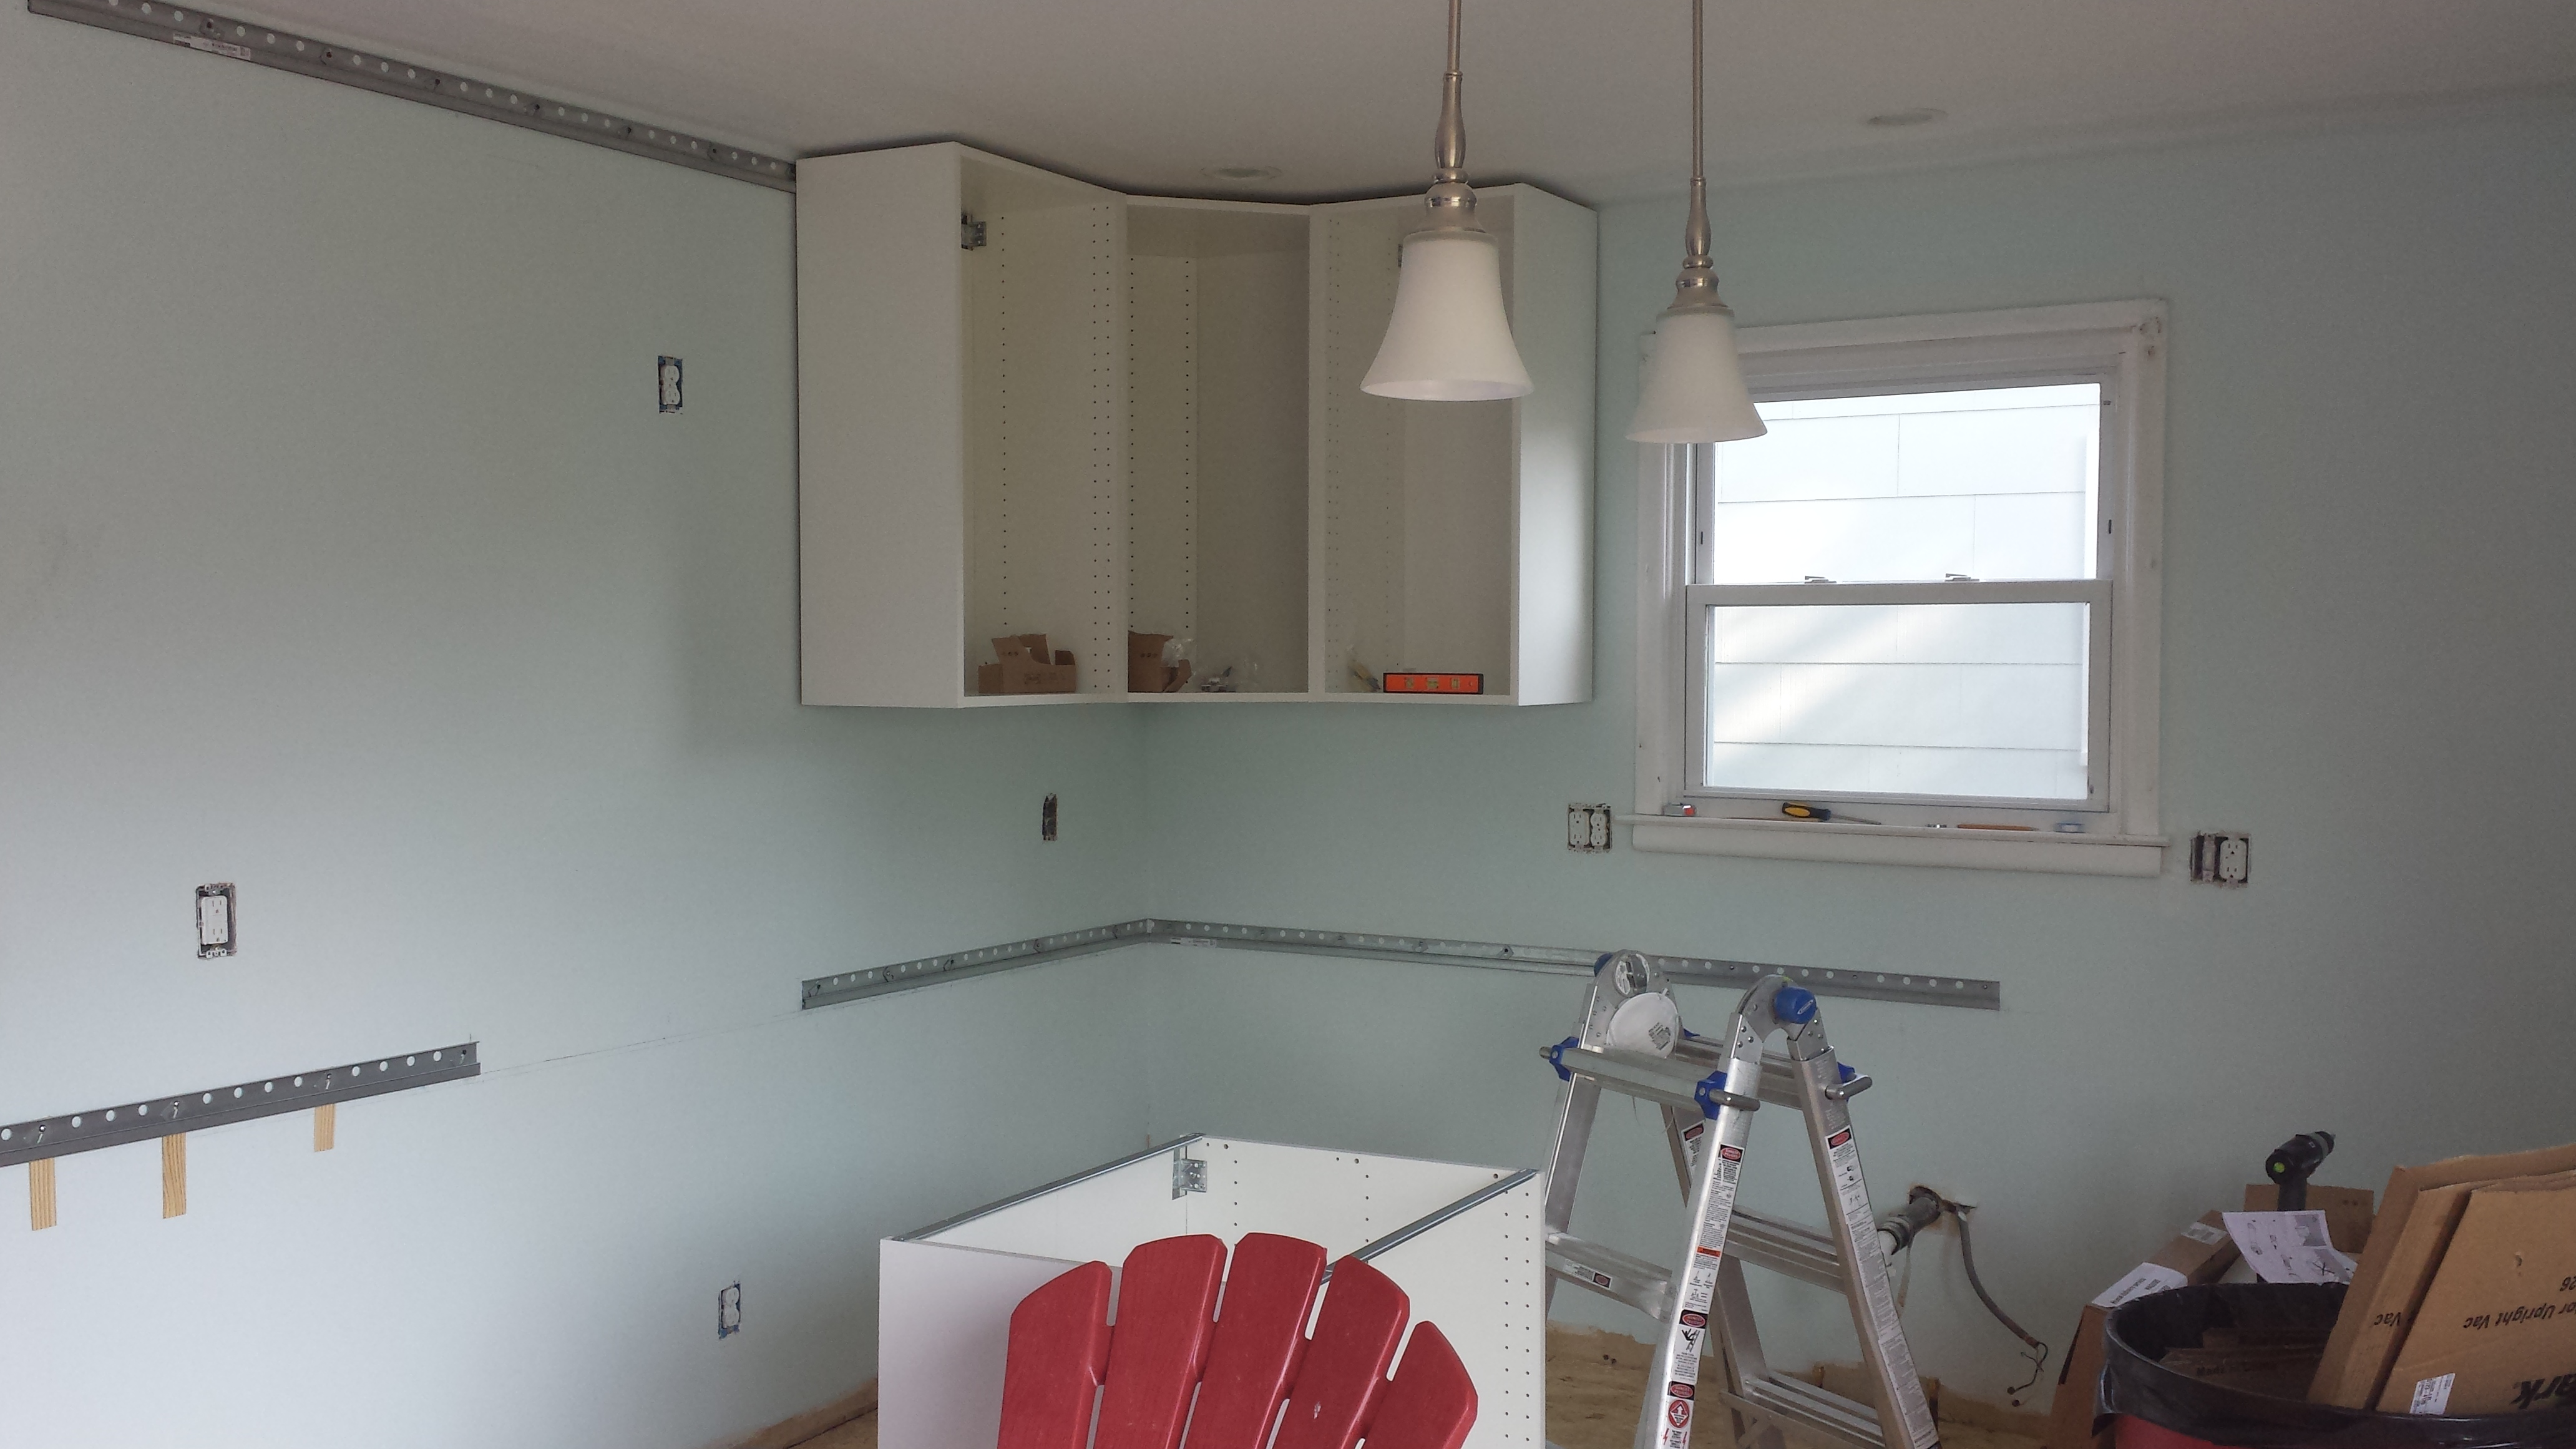 How To Install Ikea Kitchen Cabinets Cabinet Installation Round 2 Hanging Ikea Cabinets